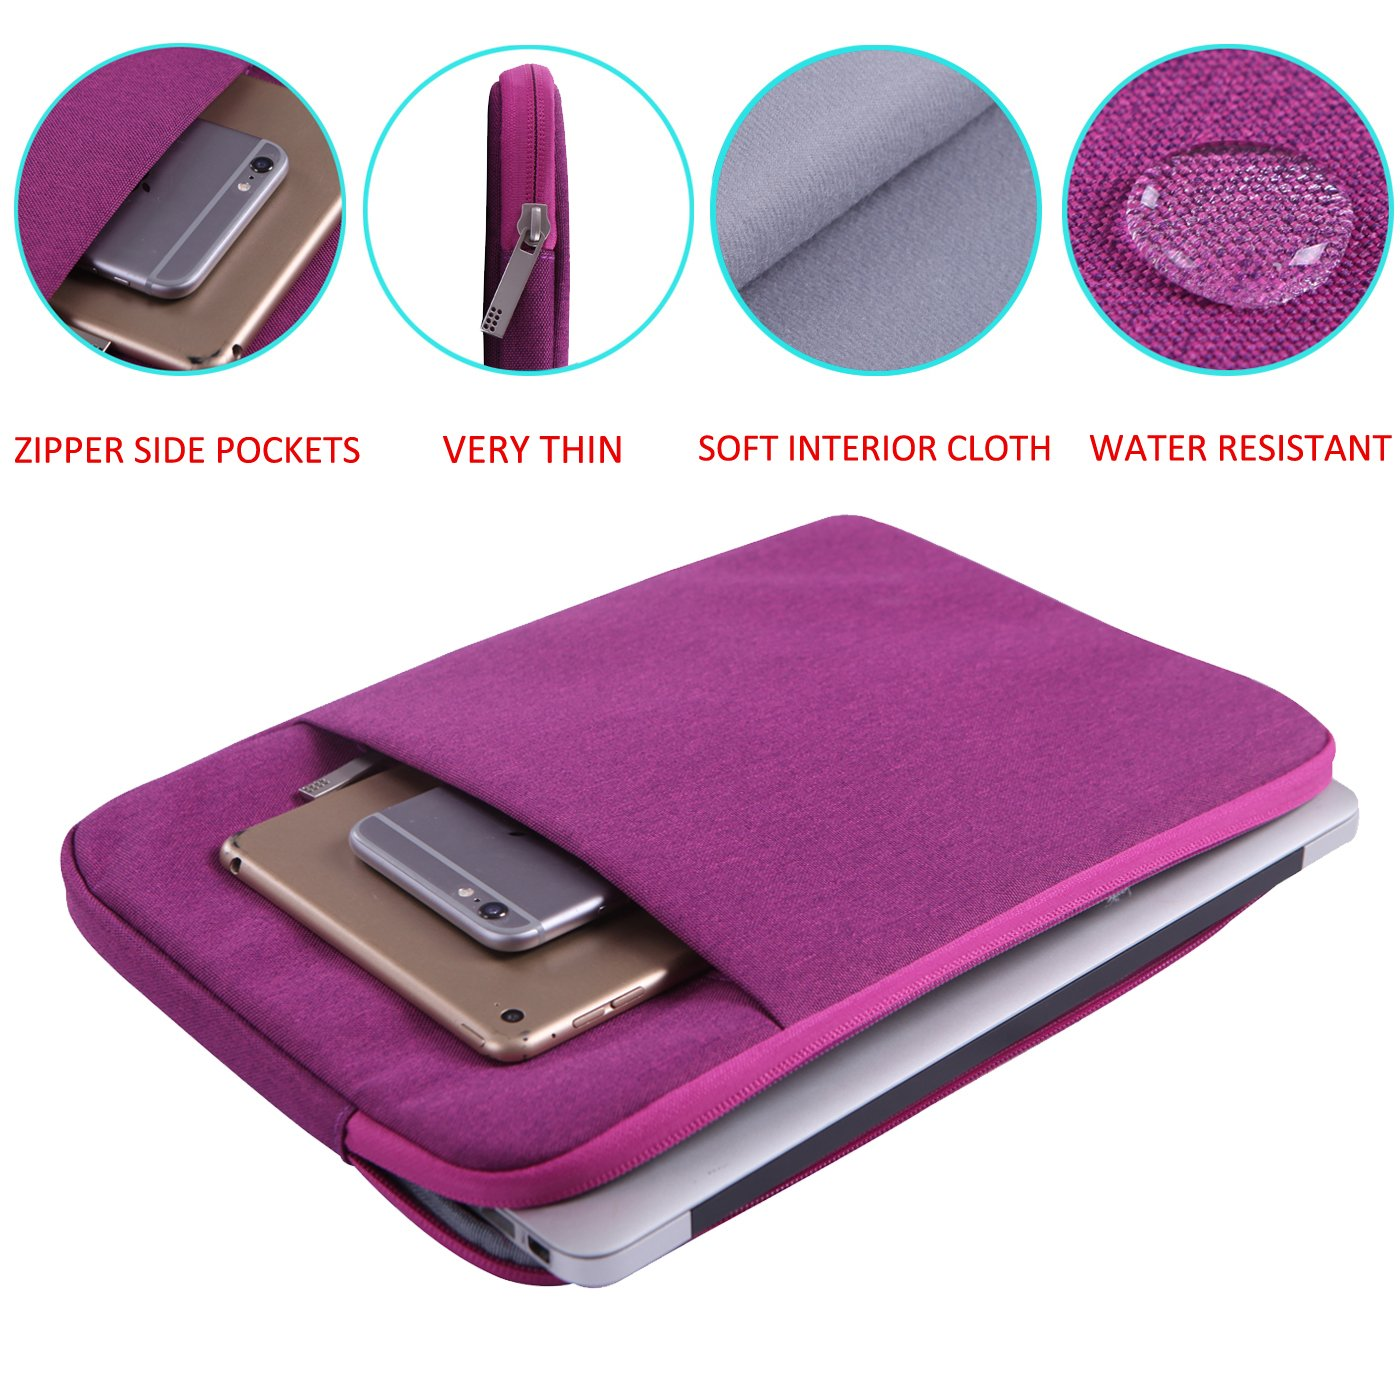 HDE 13-13.3 Inch Waterproof Laptop Sleeve for MacBook Air 13 / MacBook Pro 13 Notebook Carrying Case Bag Apple Dell Asus HP Chromebook Acer Lenovo Toshiba (Blue) HDE-49190